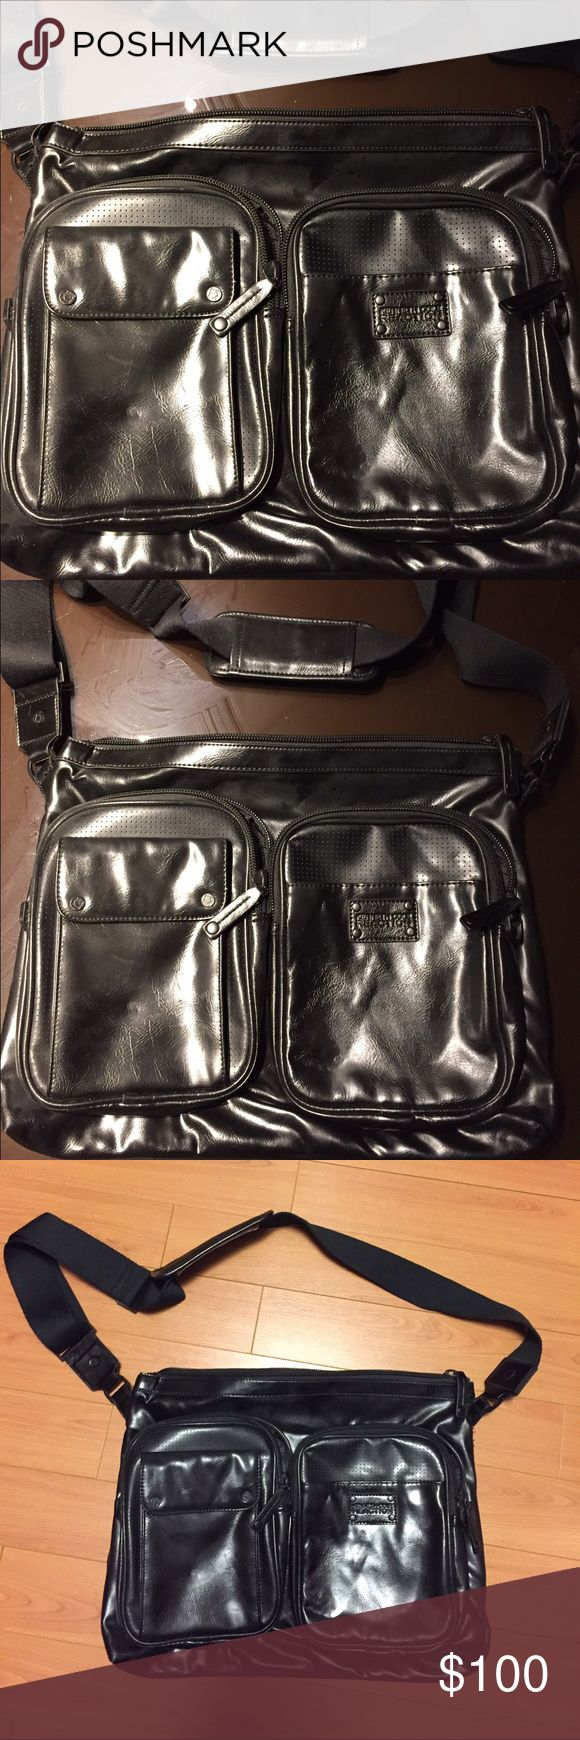 Black leather messenger bag Black leather messenger bag with adjustable shoulder strap. Purchased from the men's department and used as a laptop bag for a conference. Only used once so in almost new condition. Kenneth Cole Reaction Bags Messenger Bags